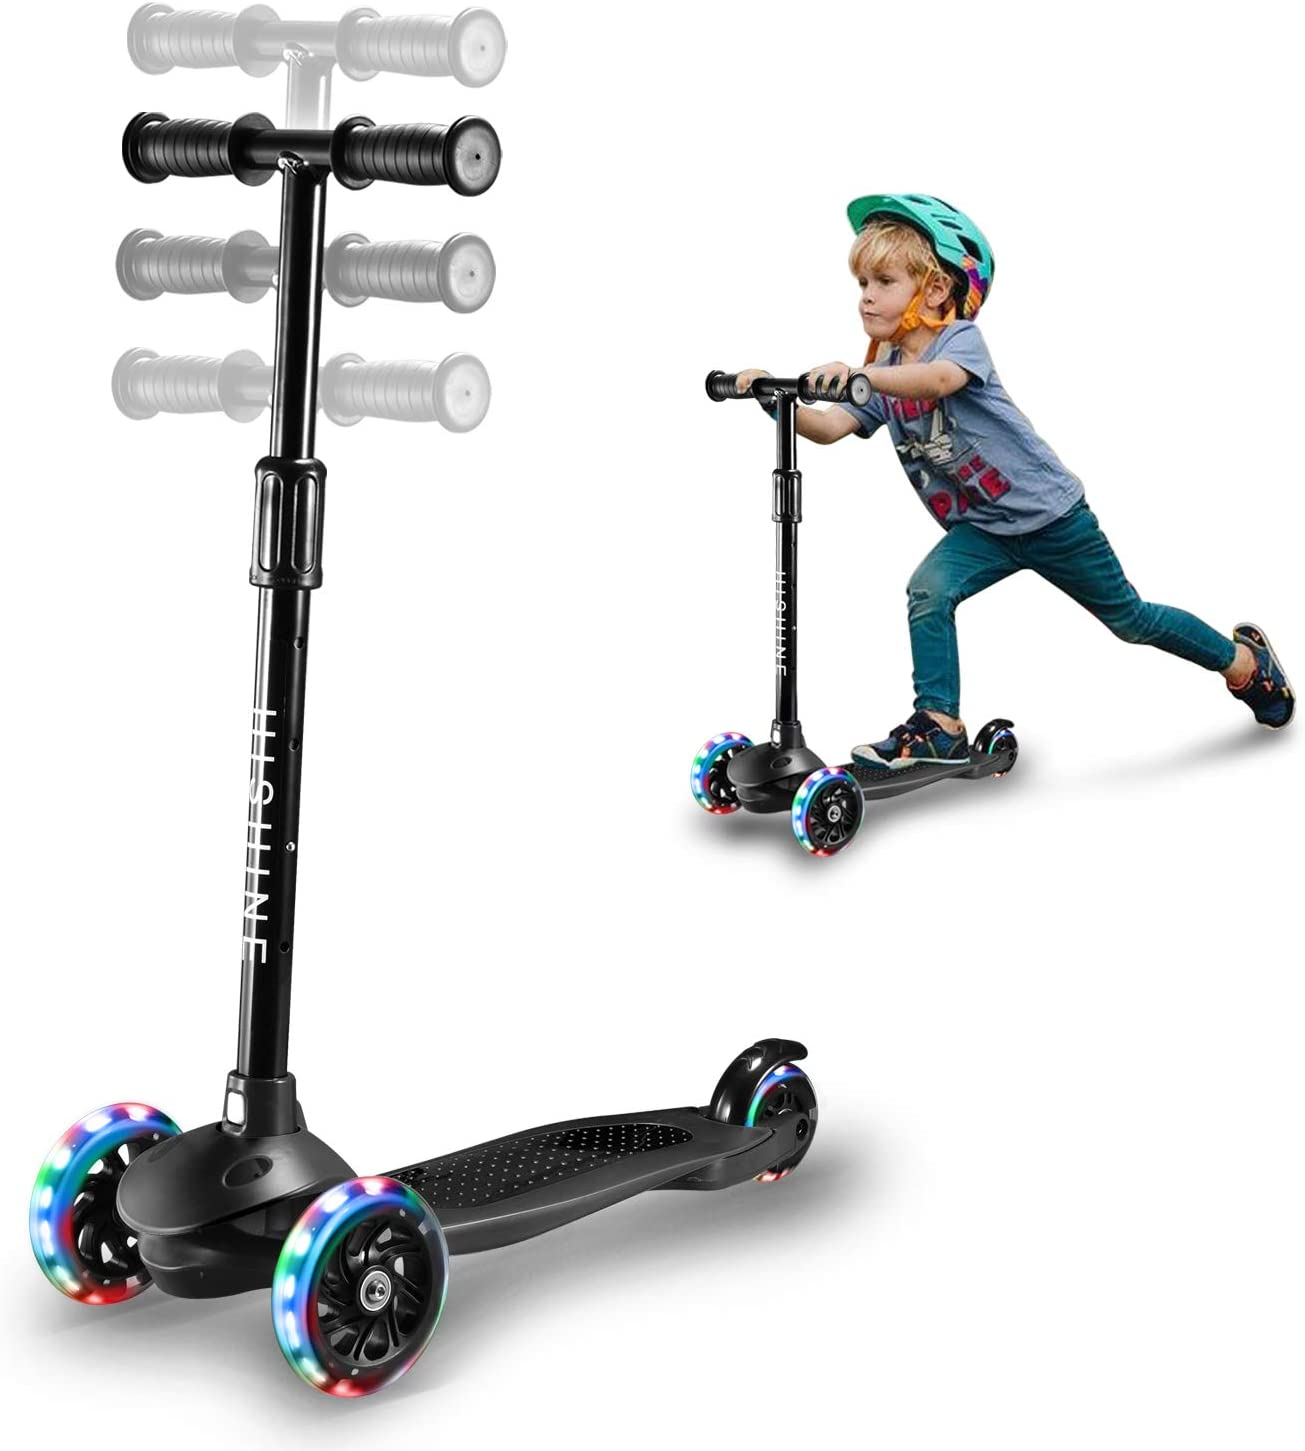 Toddler Scooter Max 87% OFF for Kids Ages Ranking TOP7 Wheels 2-5 Three Kick wit